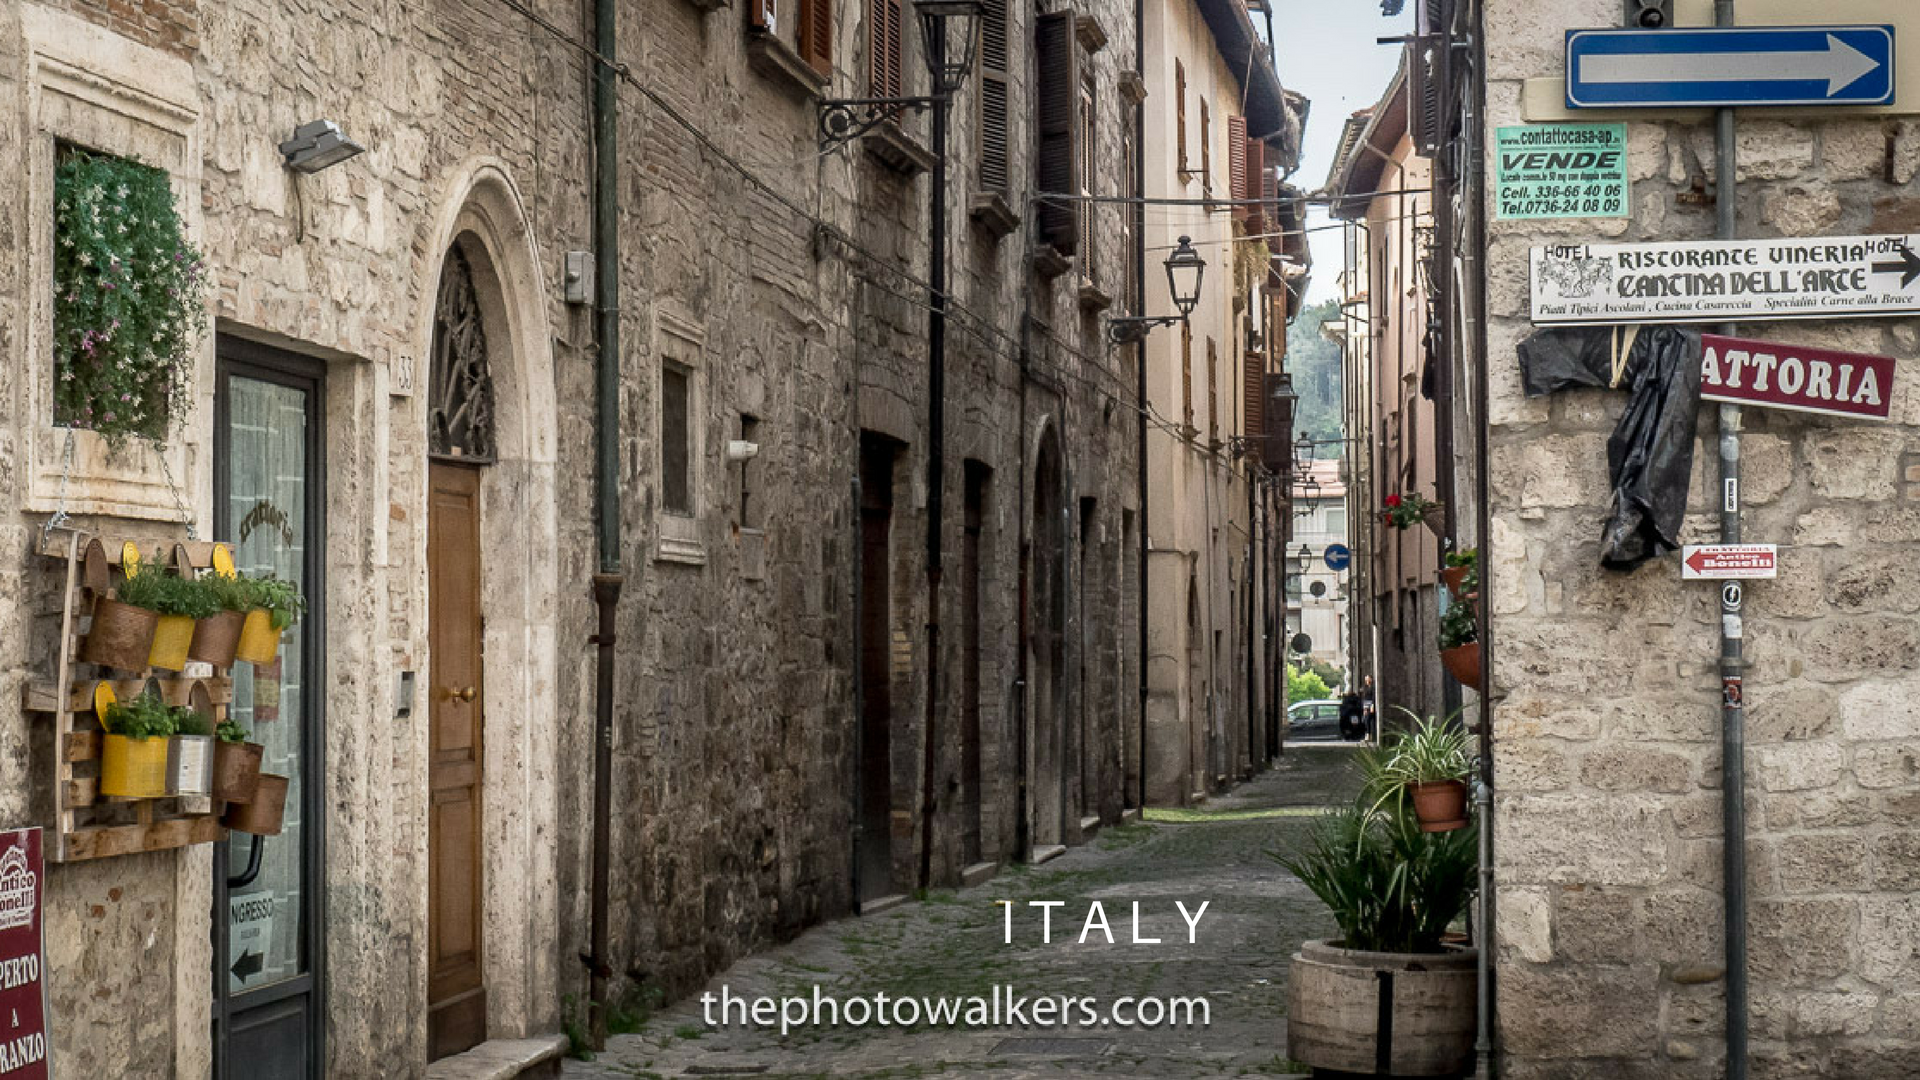 ITALY – Explore the back roads